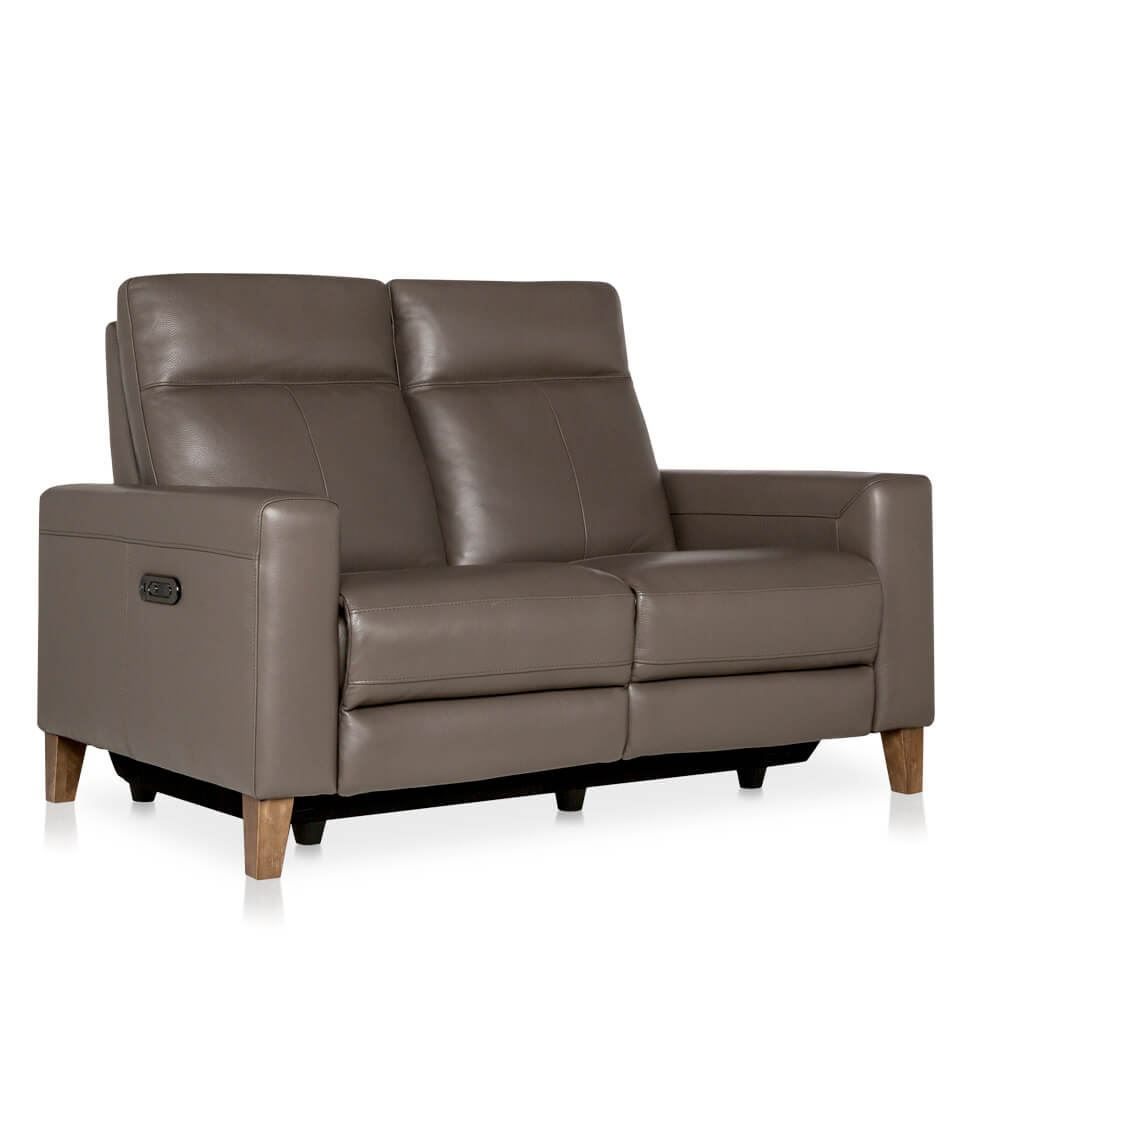 Stupendous Xander 2 Seat Leather Electric Recliner Sofa Taupe Machost Co Dining Chair Design Ideas Machostcouk